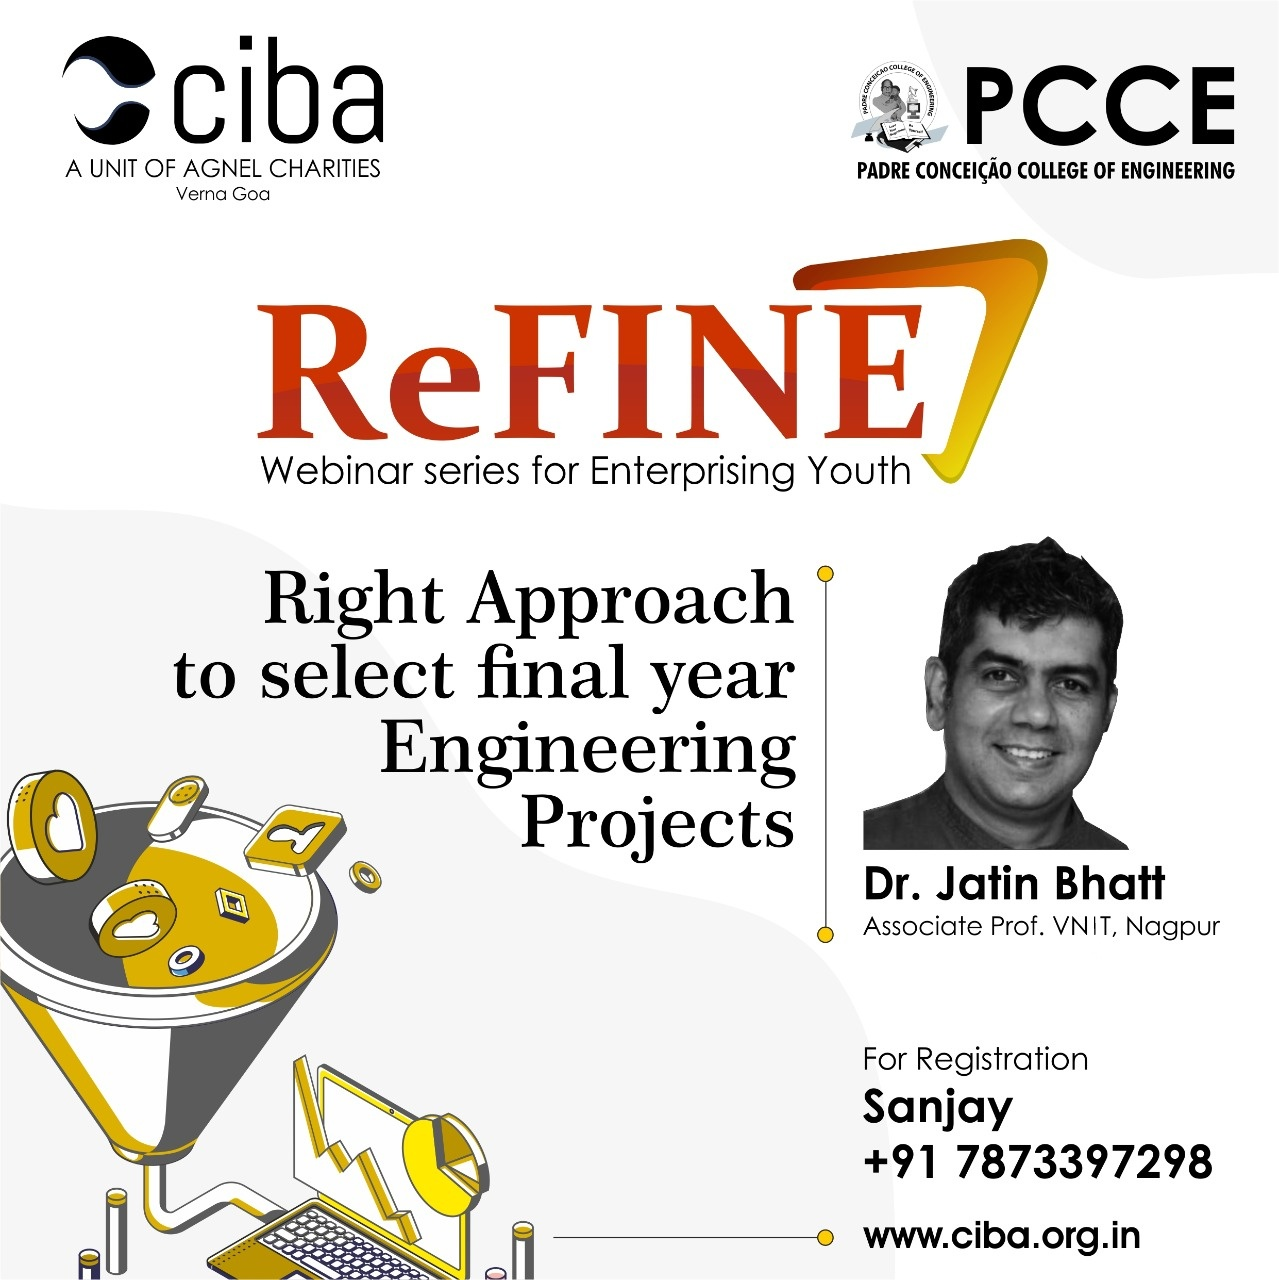 ciba-ReFINE - Right Approach to select the Final Year Engineering Project